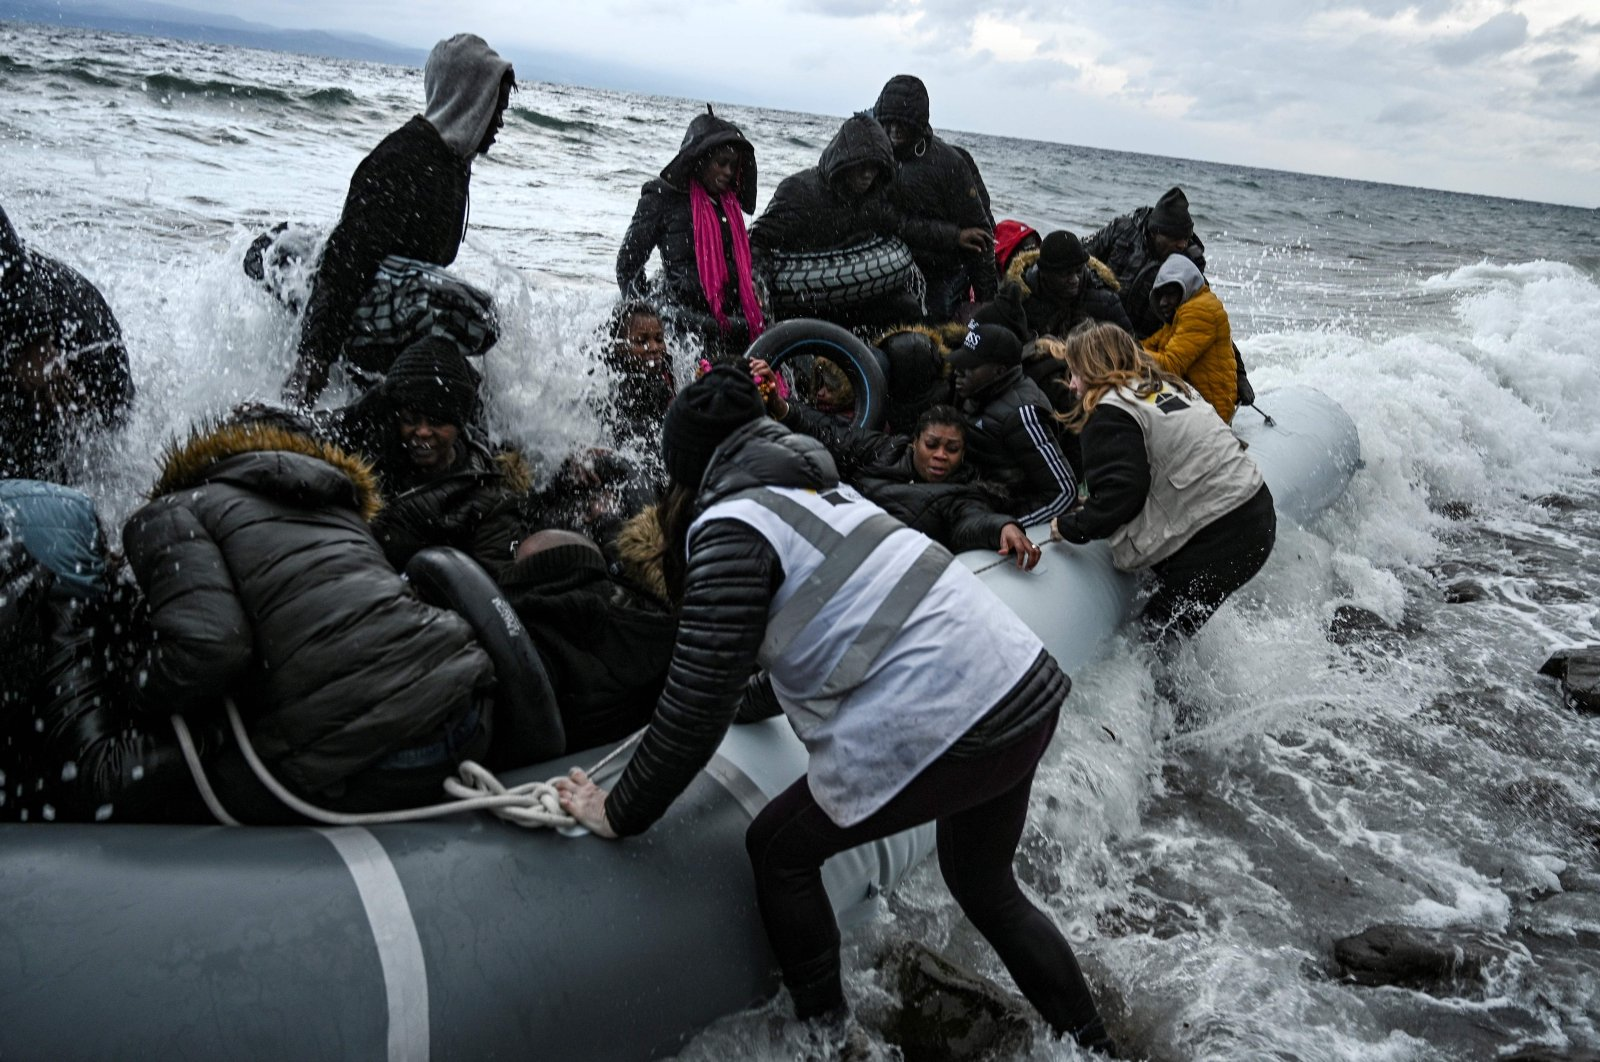 Volunteers help refugees and migrants from the Gambia and the Republic of Congo who were rescued near Lesbos island by a warship during their sea crossing between Turkey and Greece, Feb. 29, 2020. (AFP Photo)